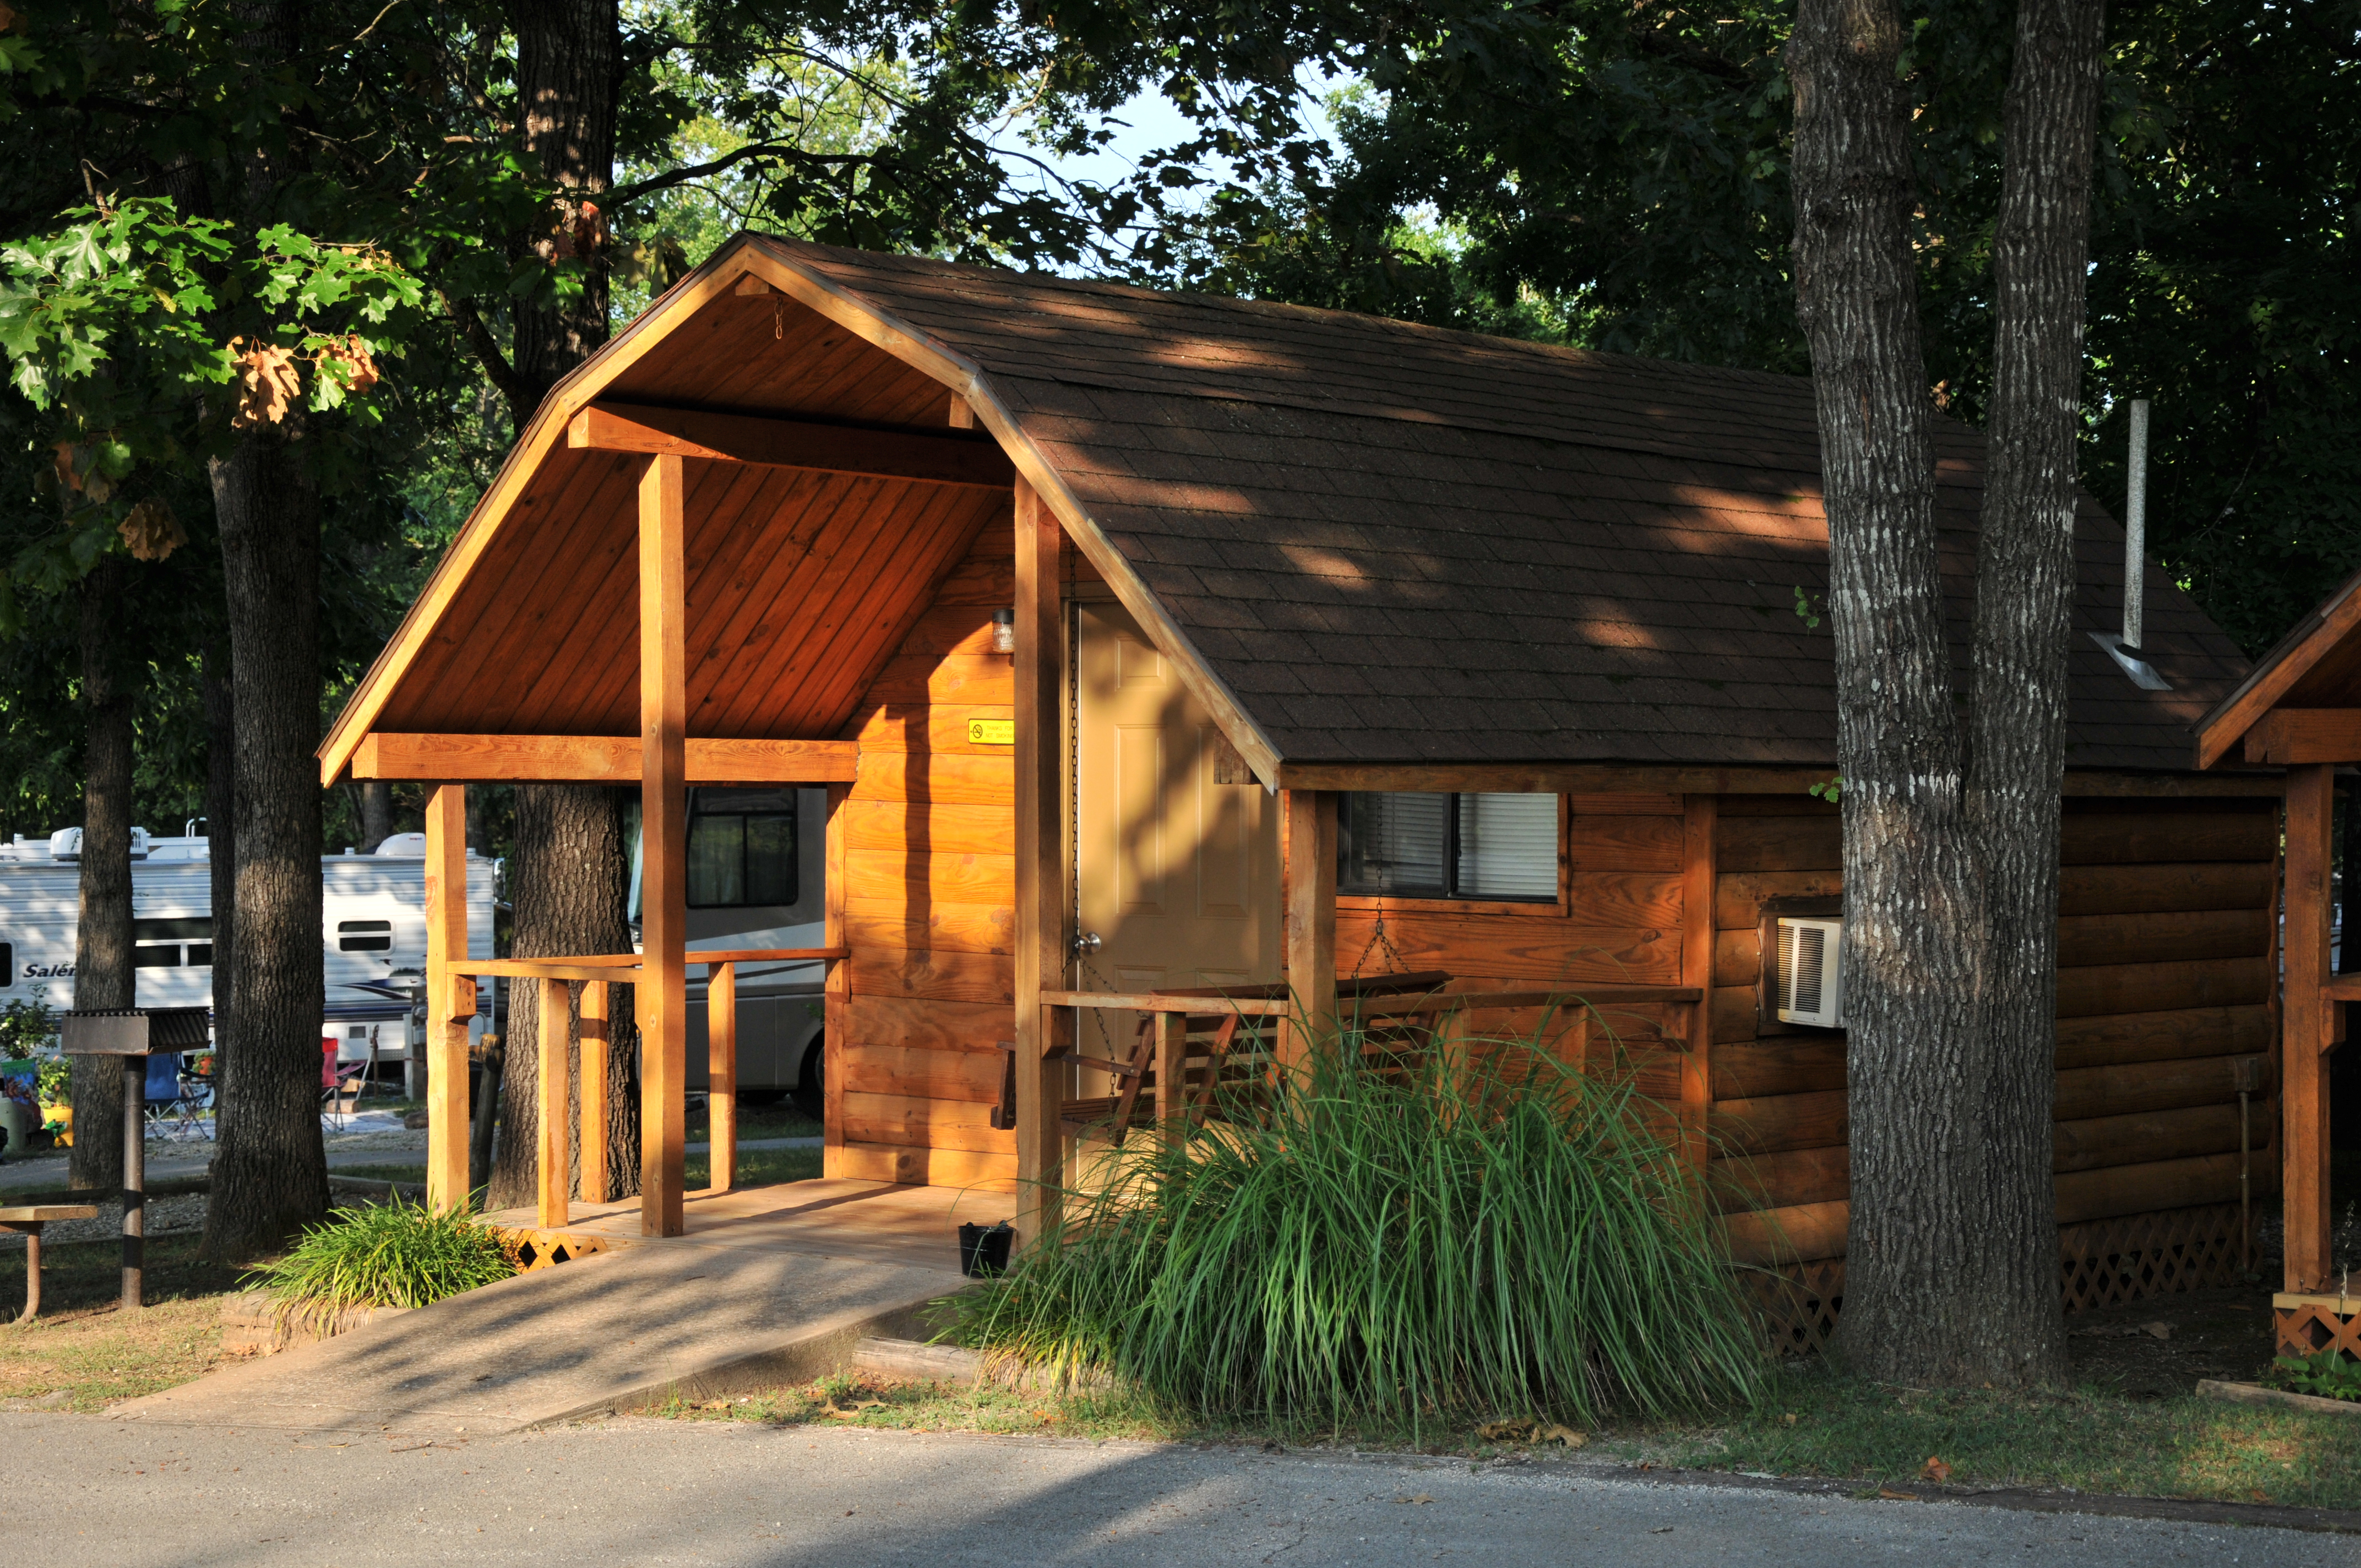 rental to for pictures cabins hawk of about branson enlarge photographs click givens hollow cabin htm missouri mo photos in please rent log